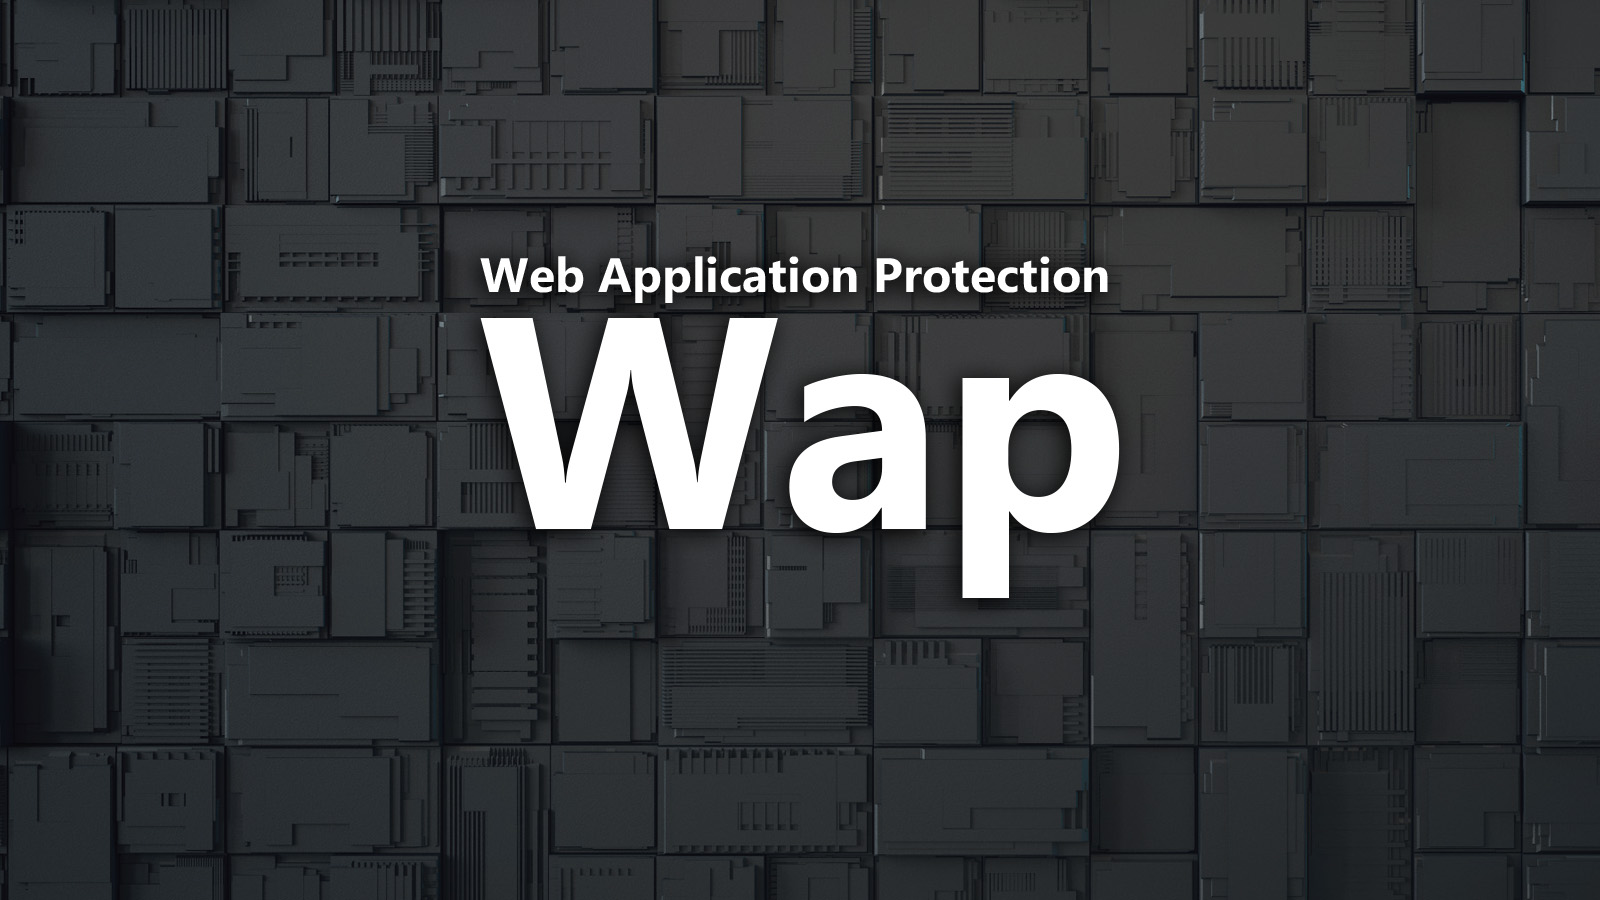 Web Application Protection - Tool To Detect and Correct Vulnerabilities In PHP Web Applications